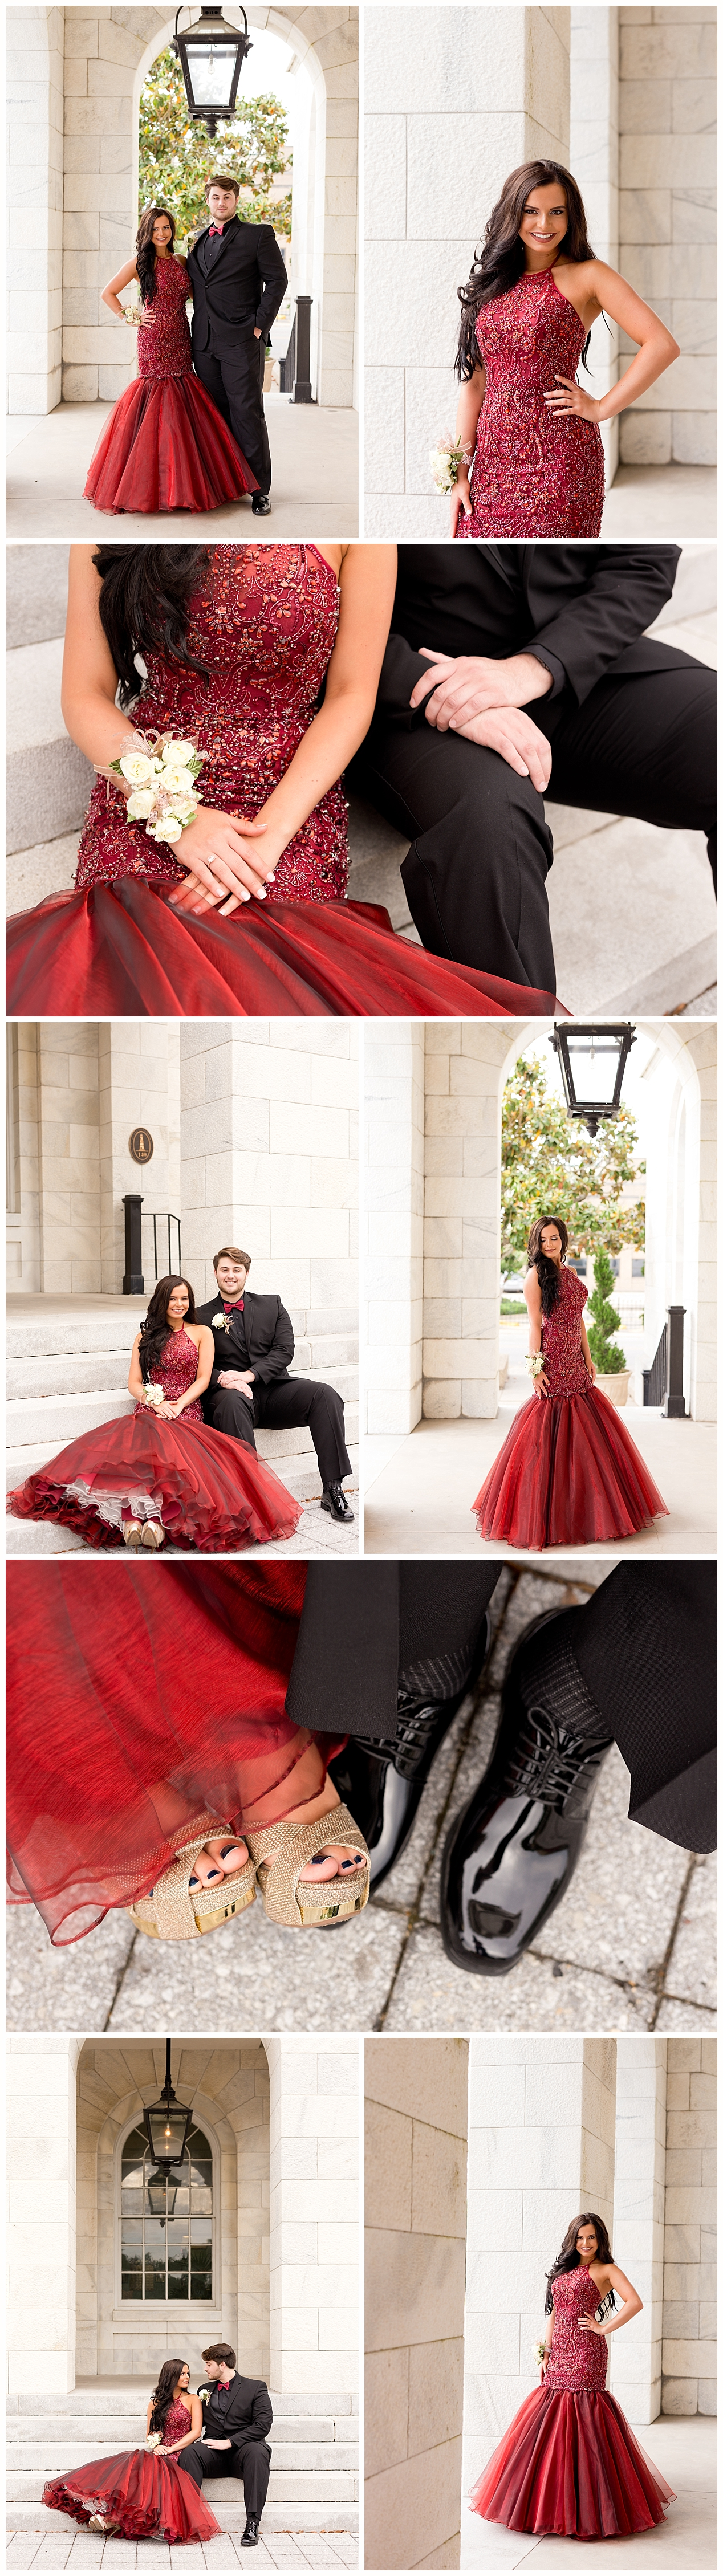 glamorous prom photos at Biloxi City Hall - Biloxi prom photographer